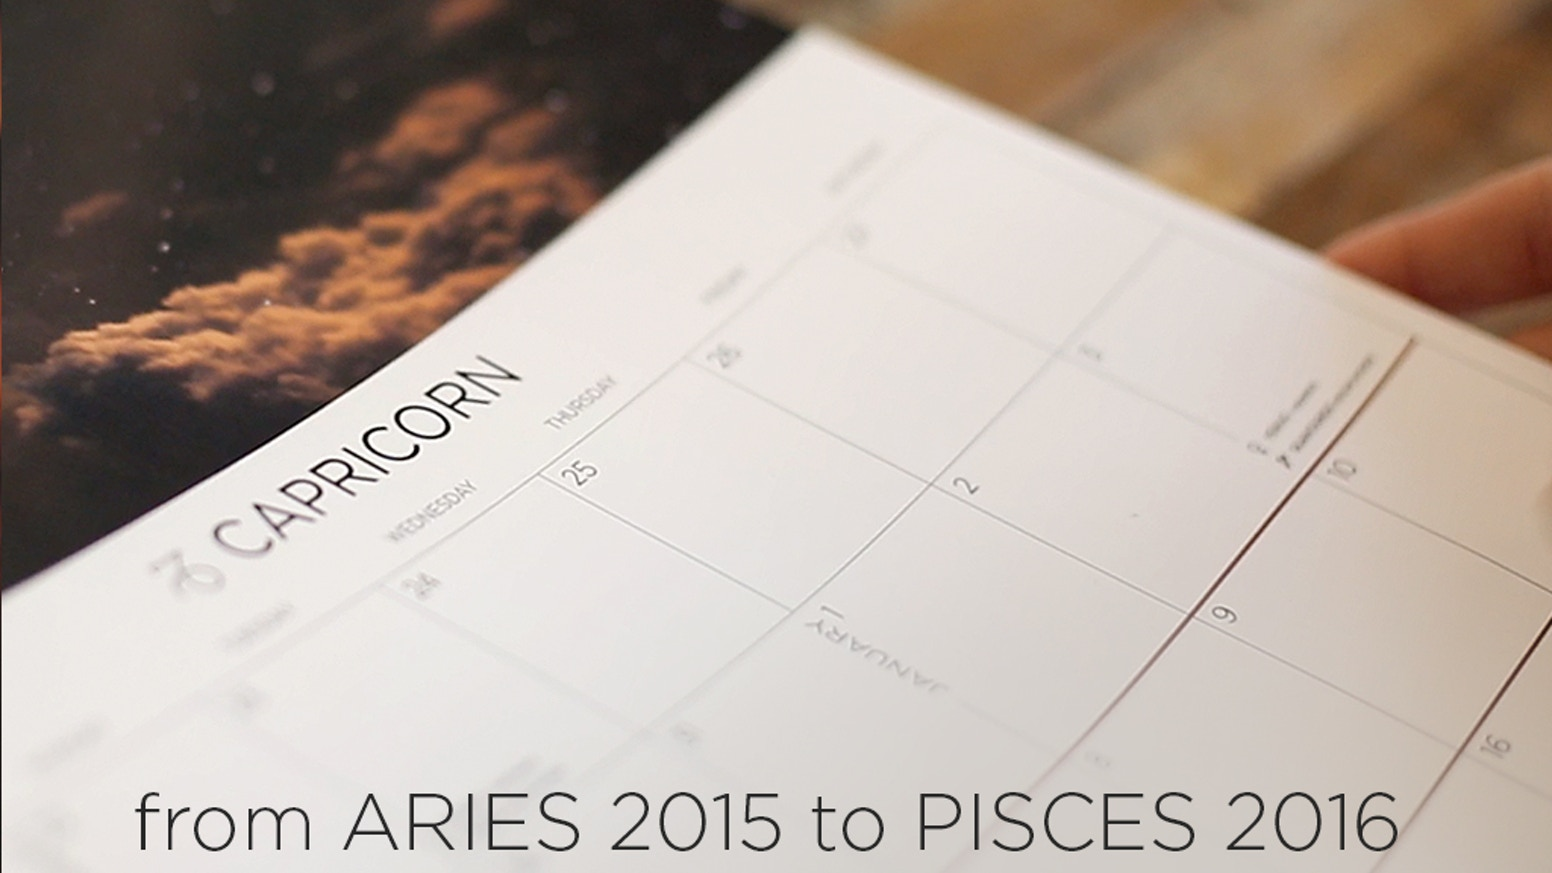 Astrologically set your earthly agenda on a reimagined wall calendar where the months change with the sun's Zodiac movements.